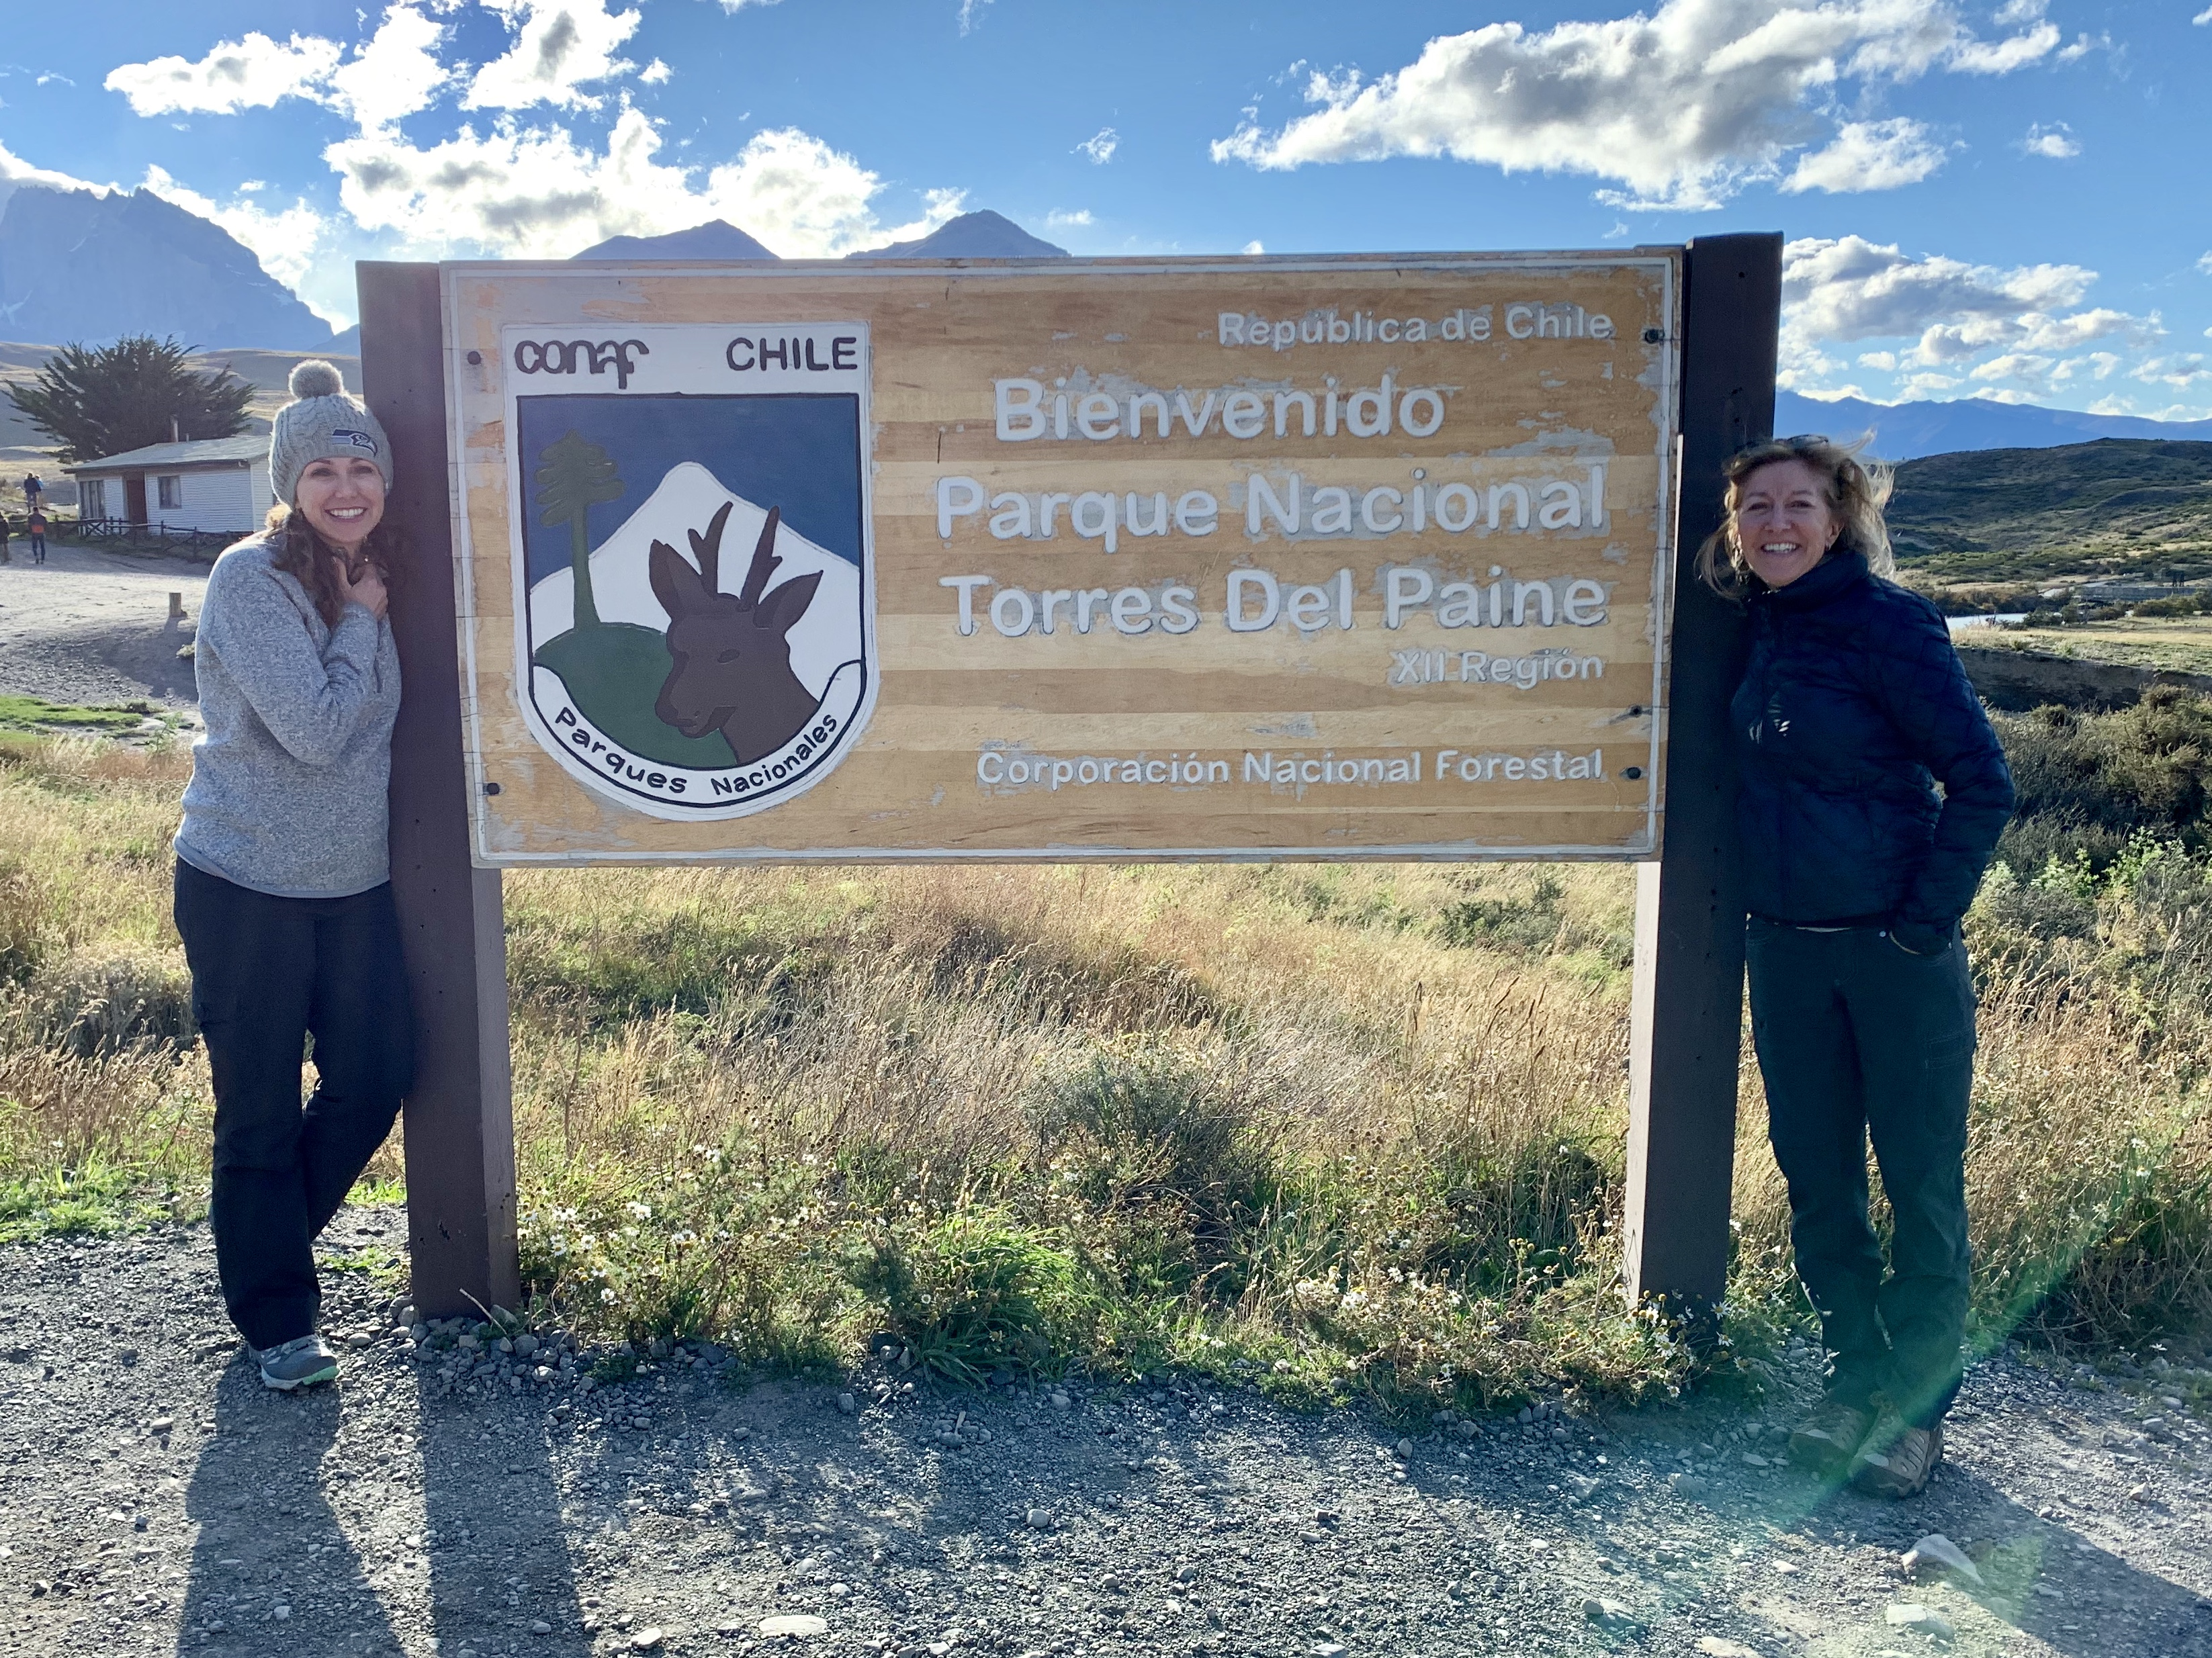 Arrival to Torres del Paine and Day 1 of The W Trek